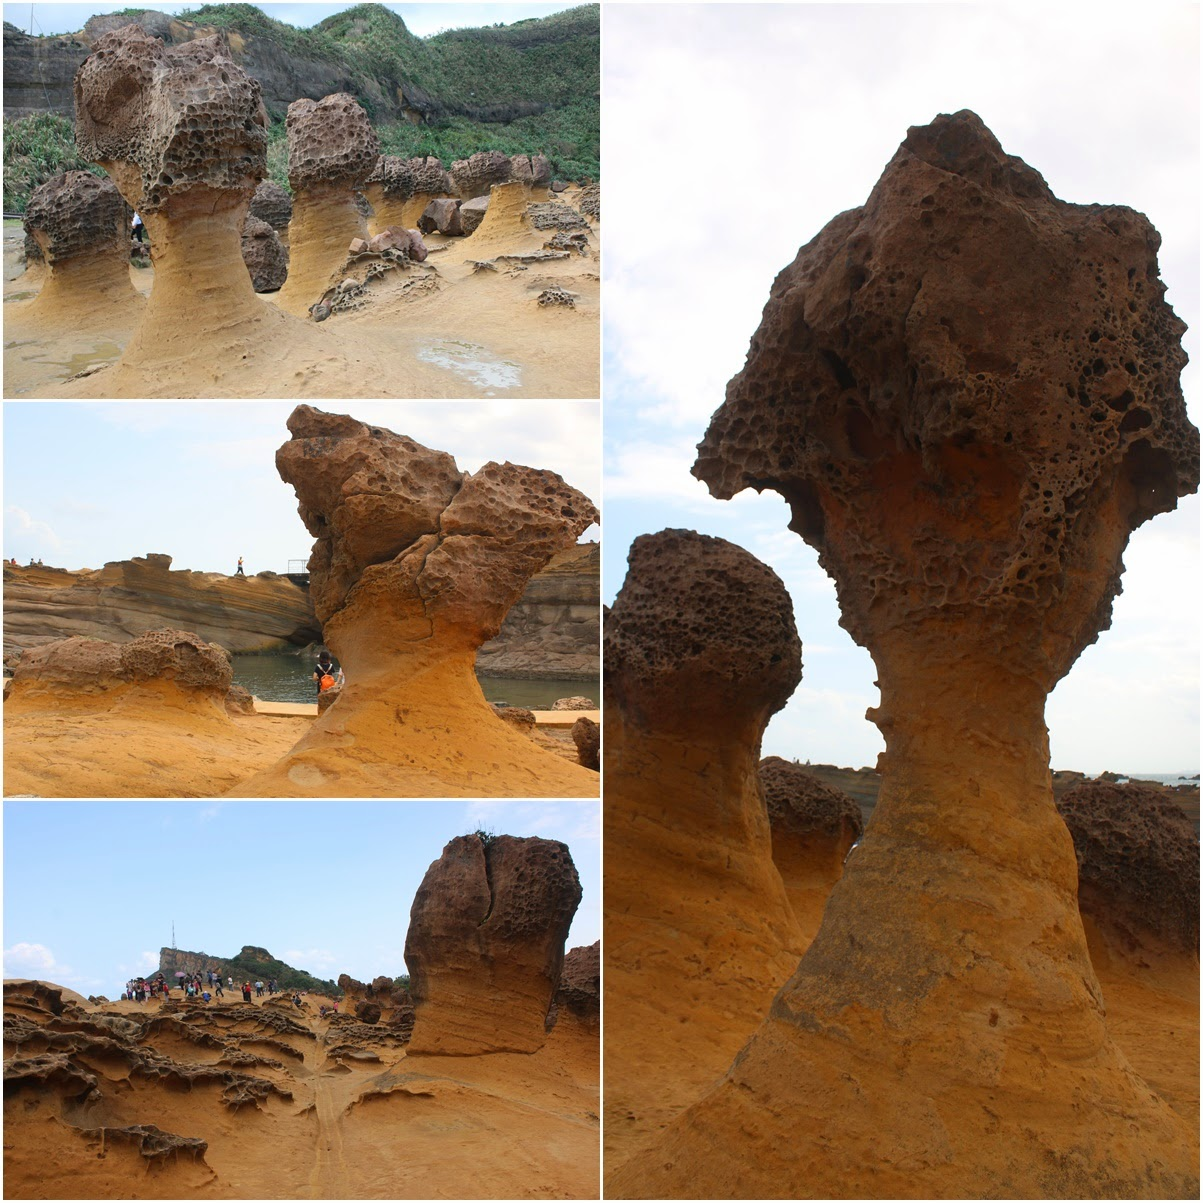 The evolution process of mushroom rocks at Yehliu Geopark in Taiwan